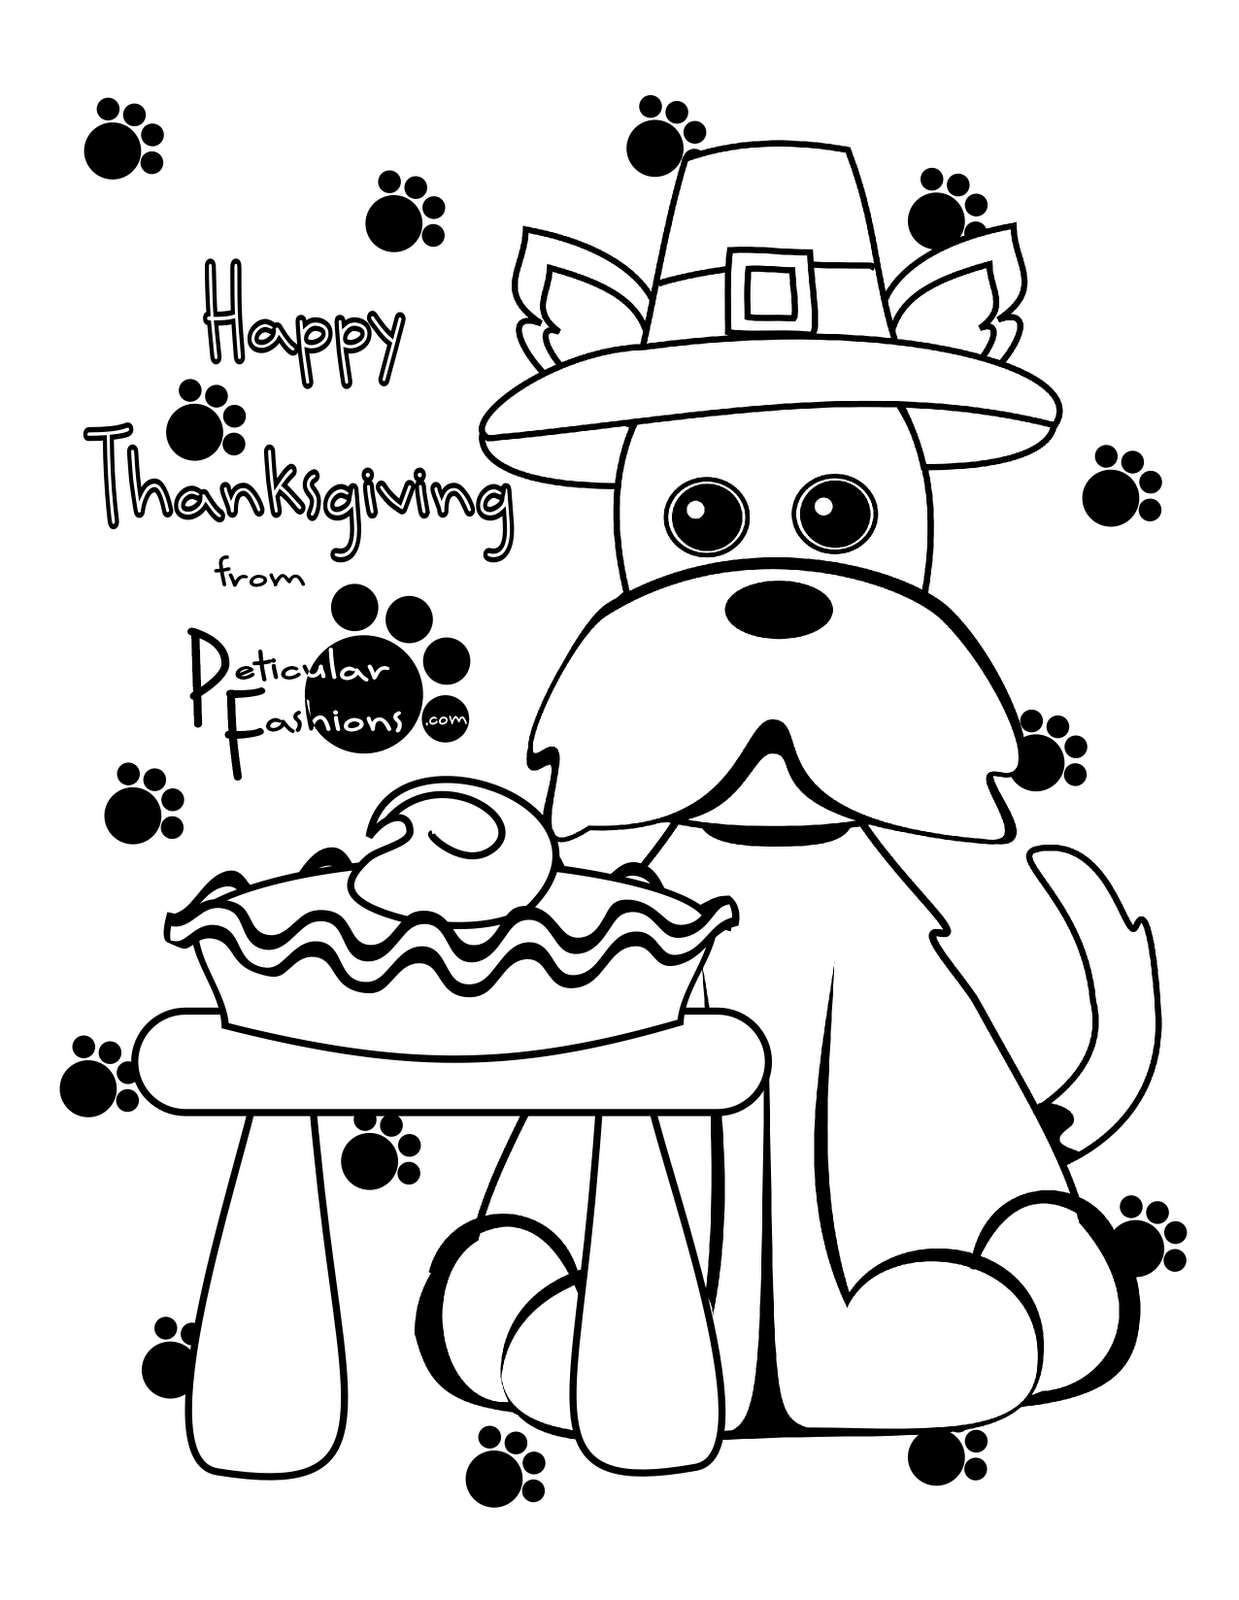 dog thanksgiving coloring pages - photo#30